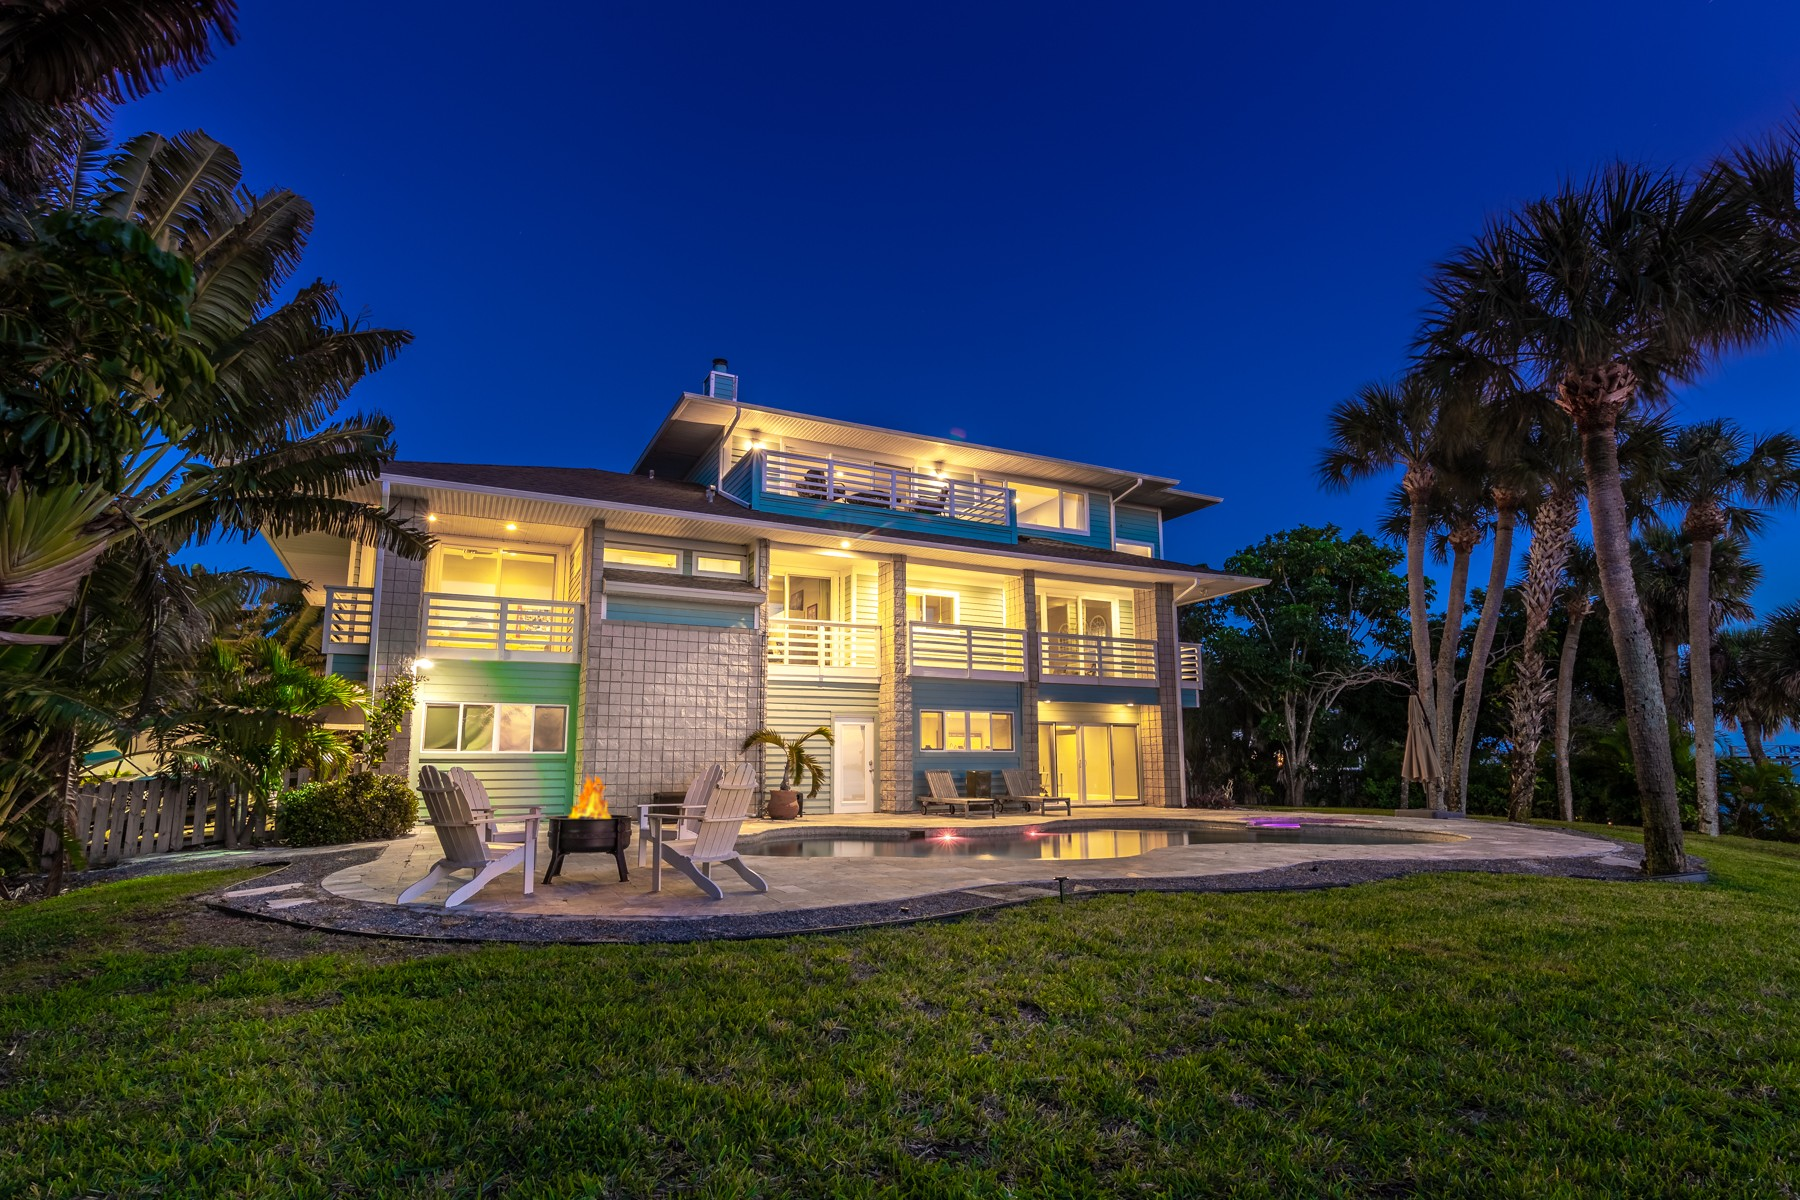 Single Family Home for Sale at Stunning Riverfront Home Exuding Elegance & Inviting Comfort. 400 Richards Road Melbourne Beach, Florida 32951 United States